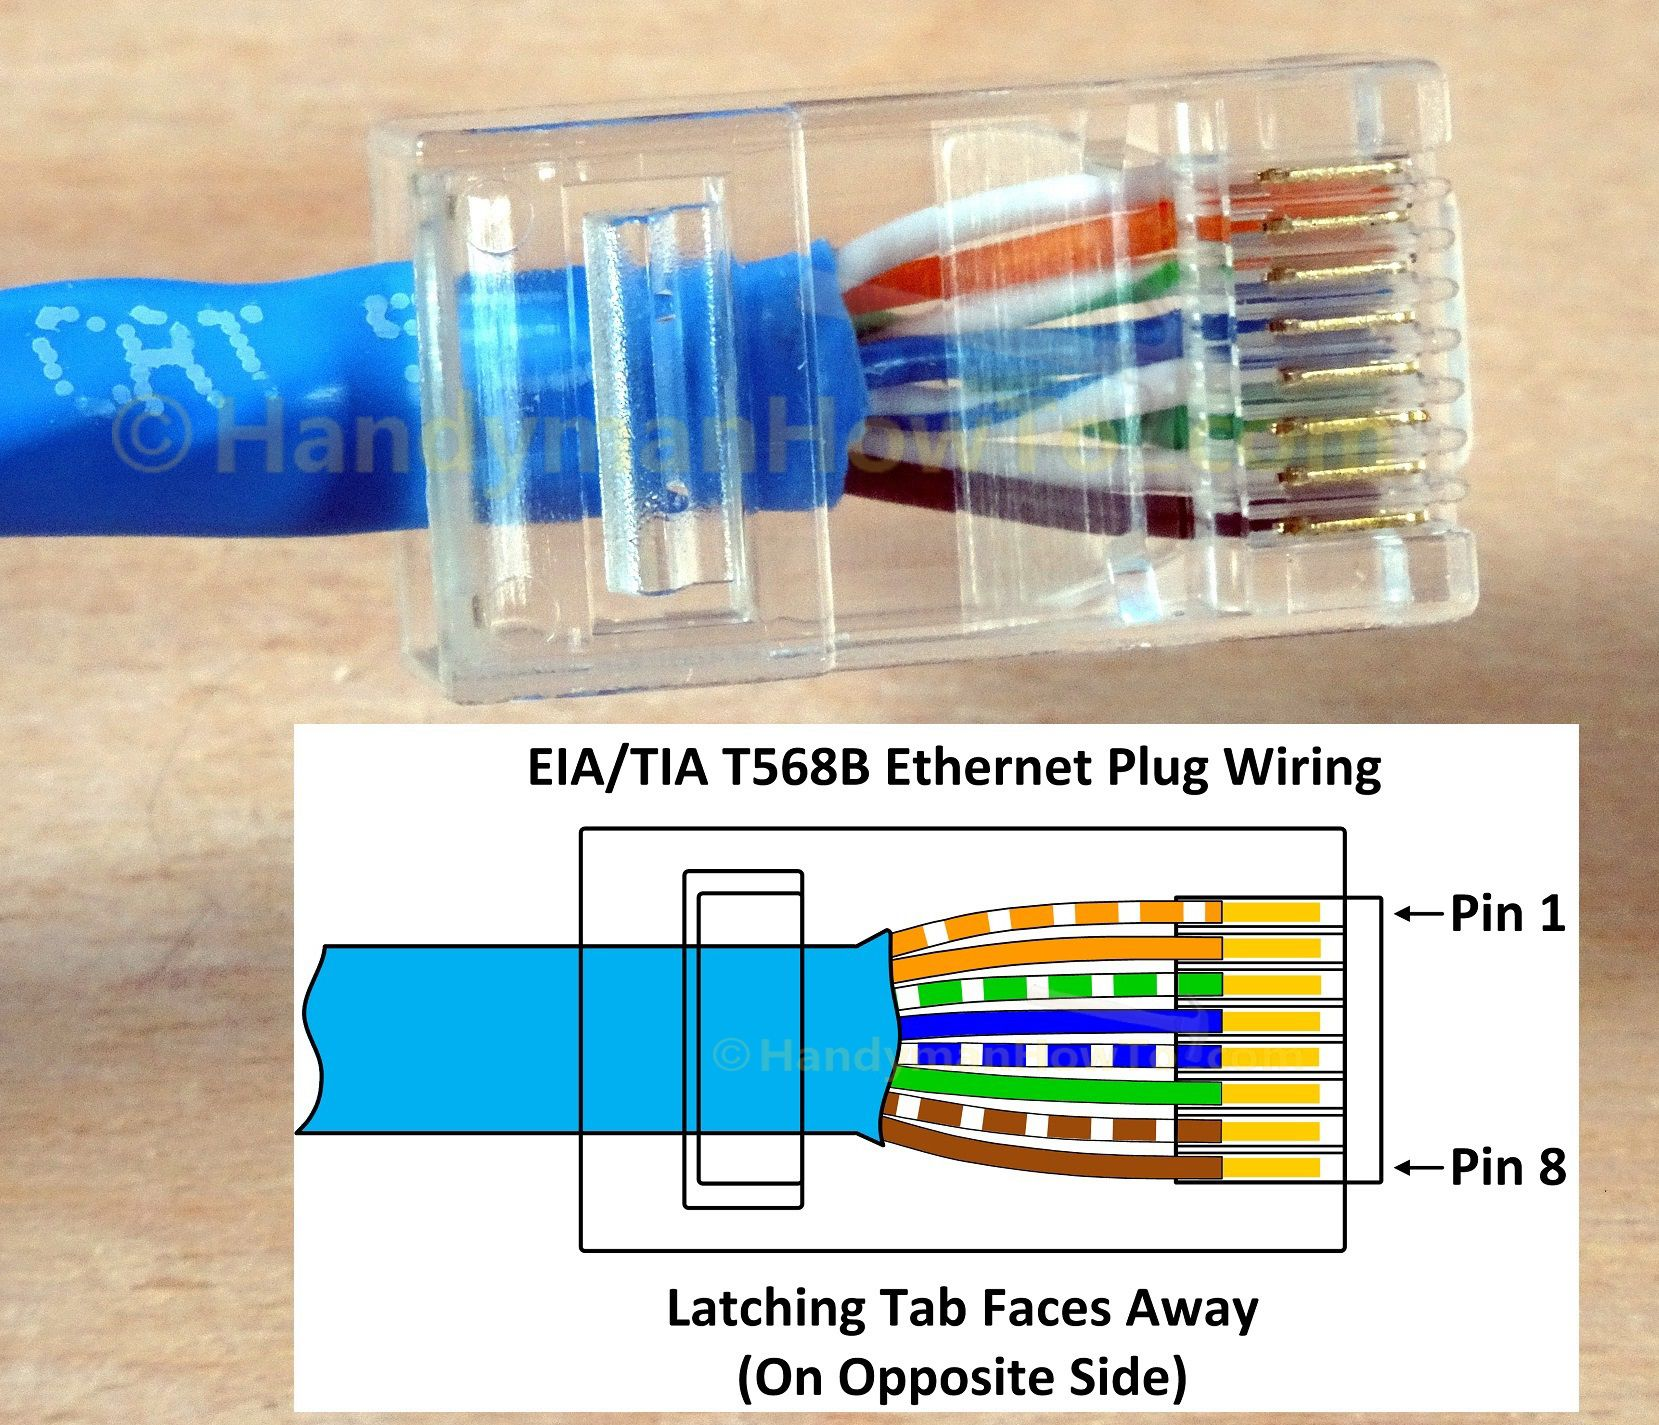 rj45 ethernet plug wiring per eai-tia t568b | diy w 2019 ... female cat 5 cable diagram #2